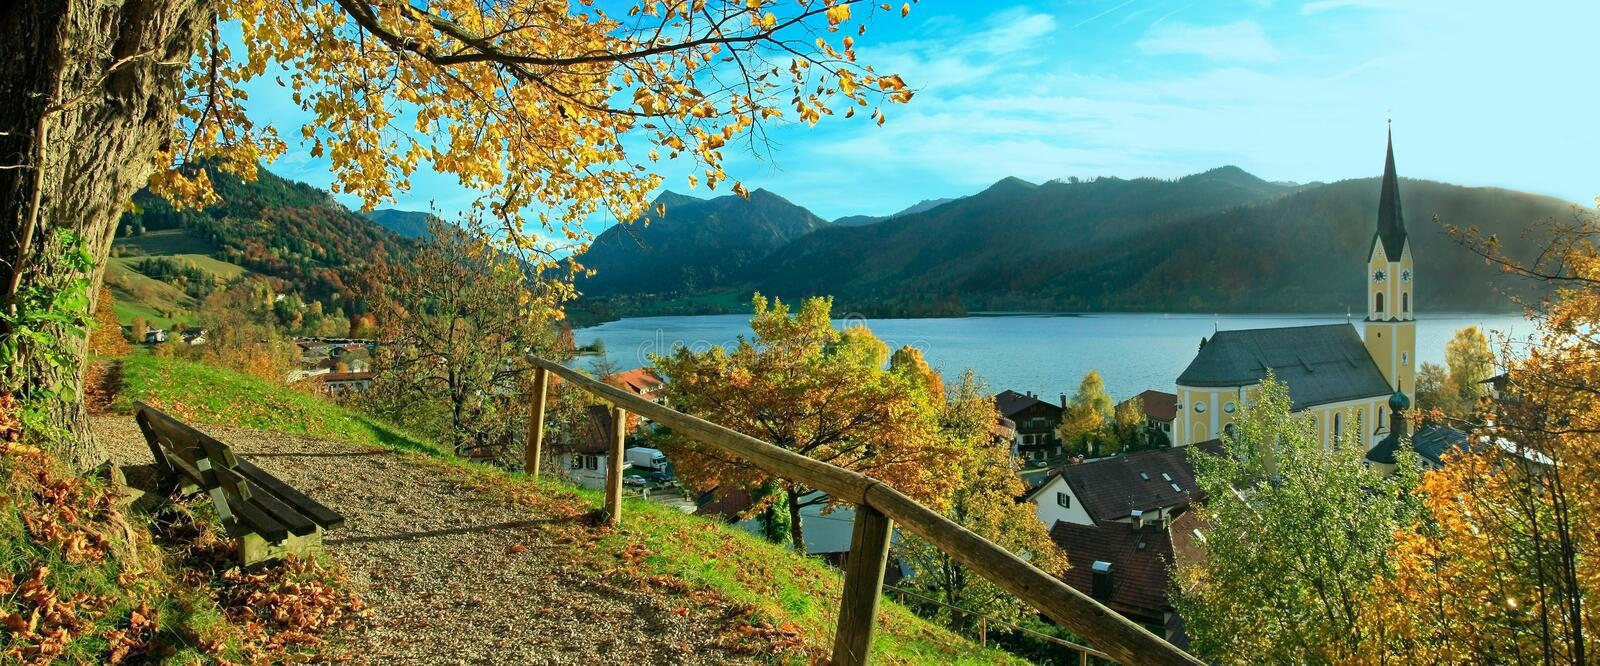 Bella vista panoramica al villaggio di schliersee in autunno fotografia stock